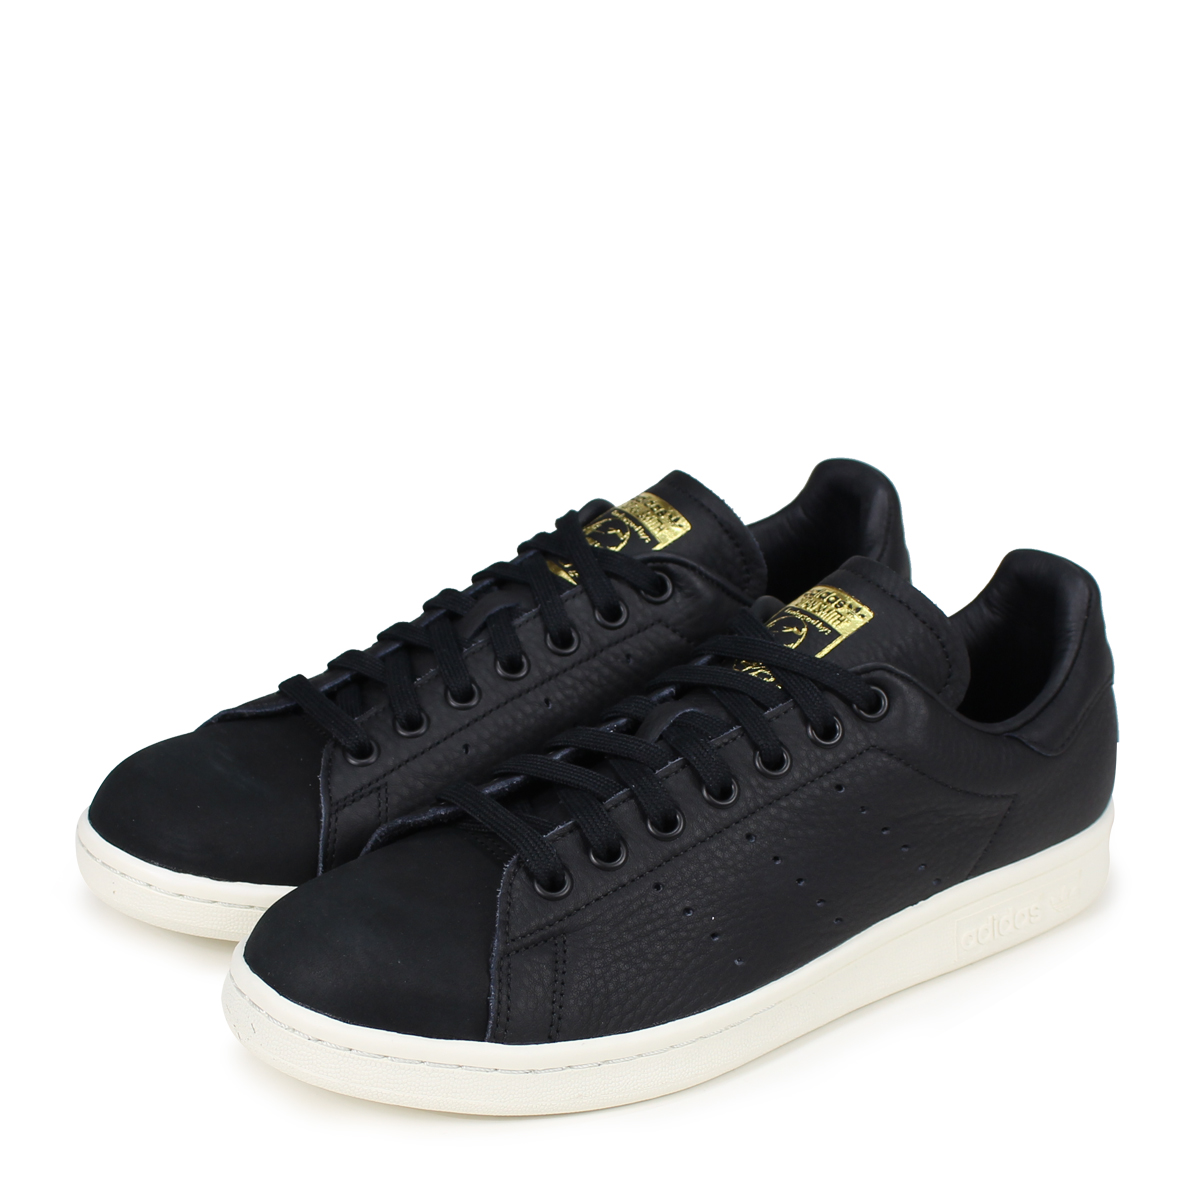 b2c6662c0961 adidas Originals STAN SMITH PREMIUM Adidas originals Stan Smith sneakers  men gap Dis B37901 black  load planned Shinnyu load in reservation product  8 14 ...